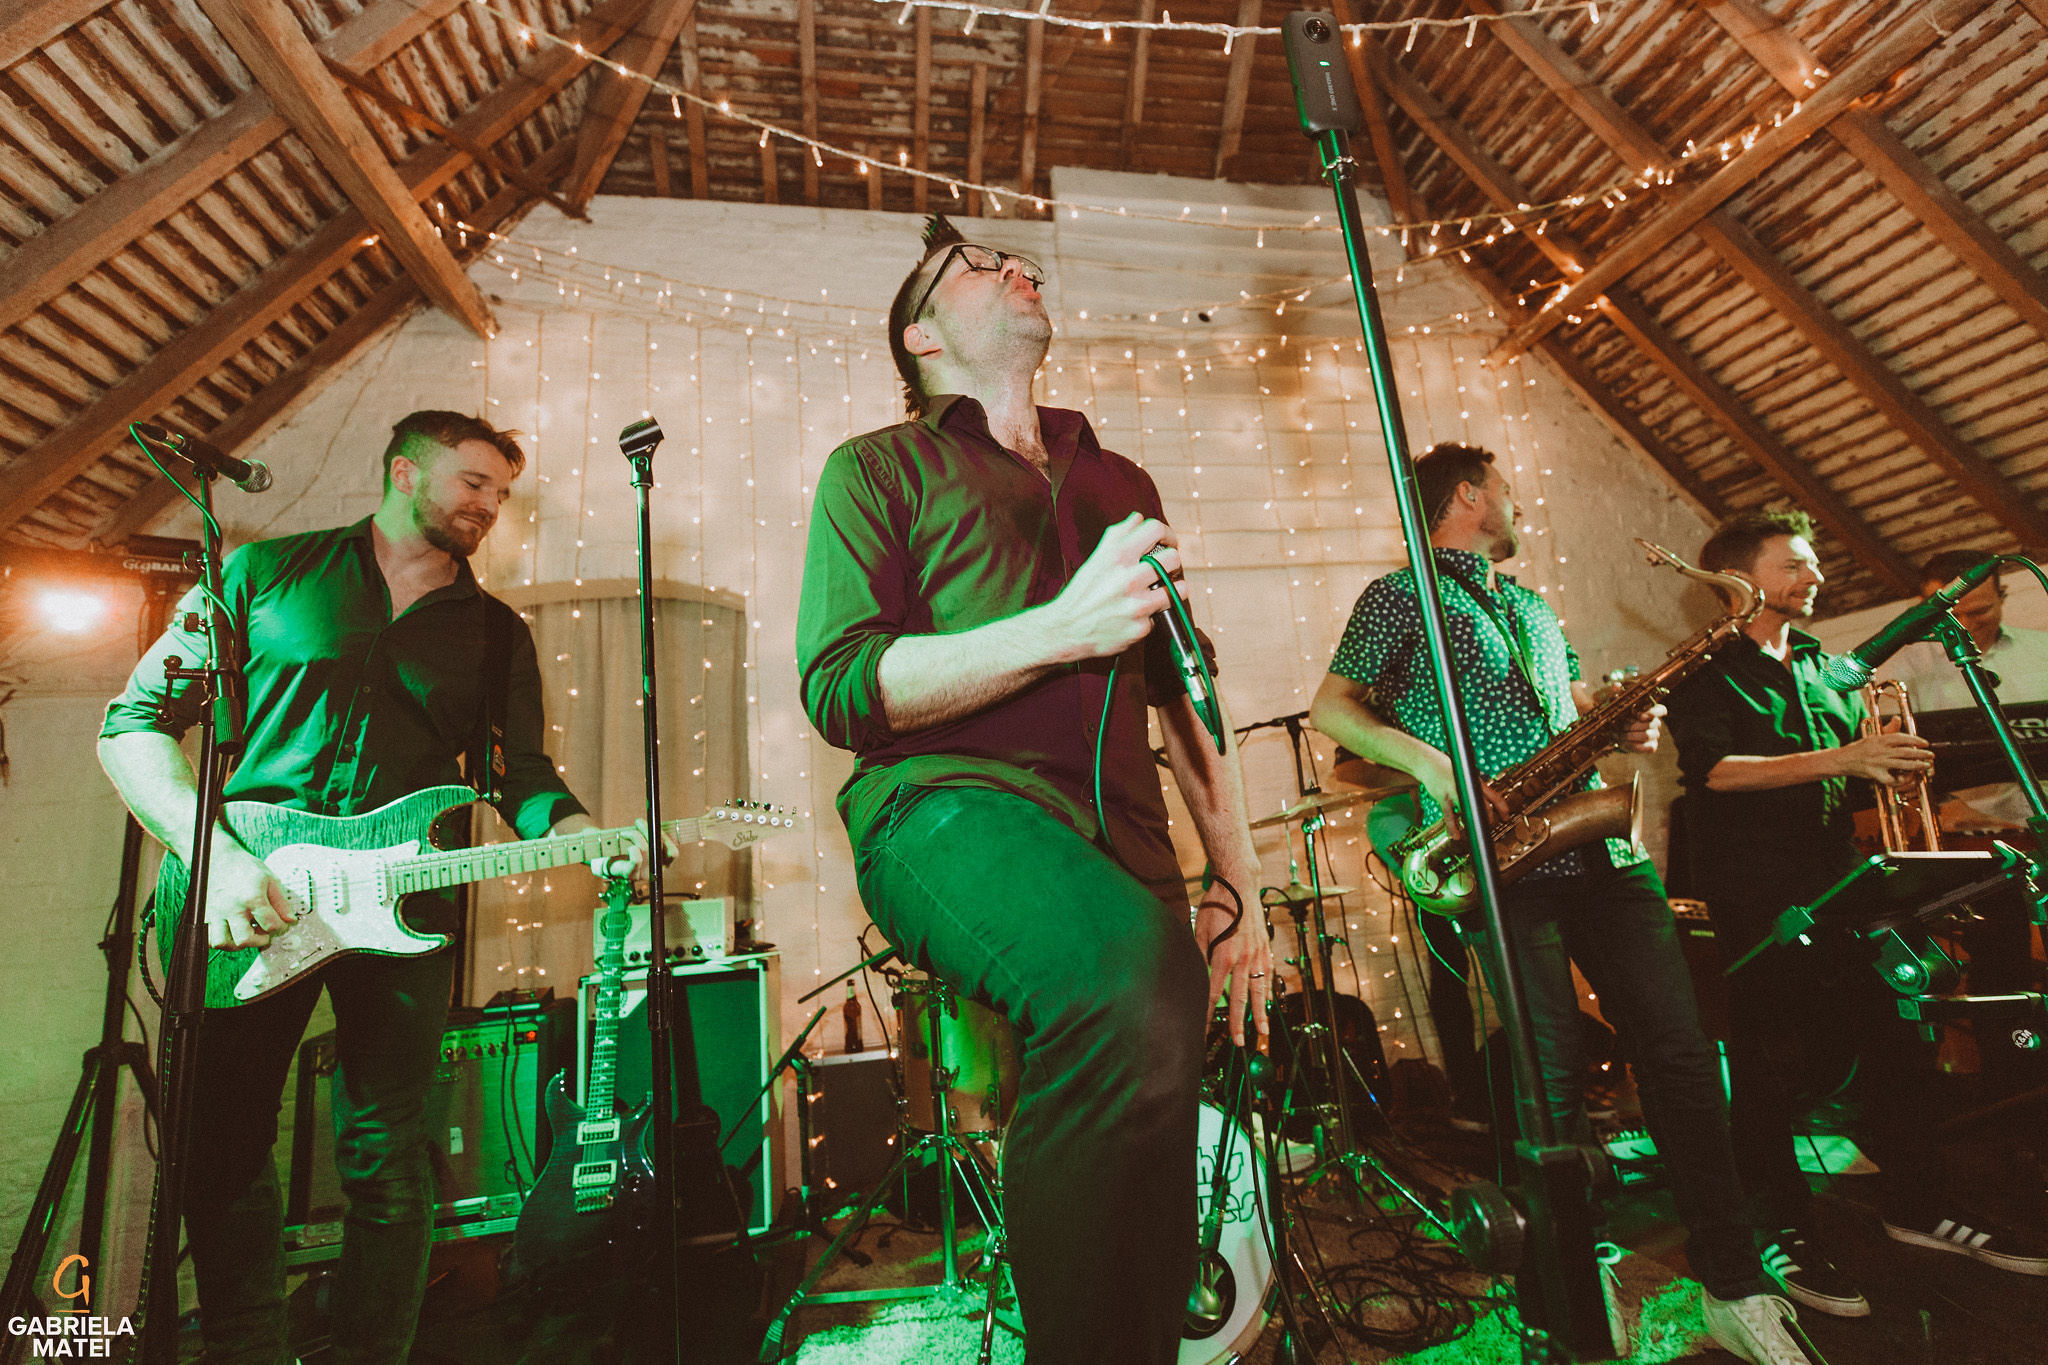 Wedding music band singing at South Stoke Barn wedding venue in Arundel by gabriela matei sussex photographer